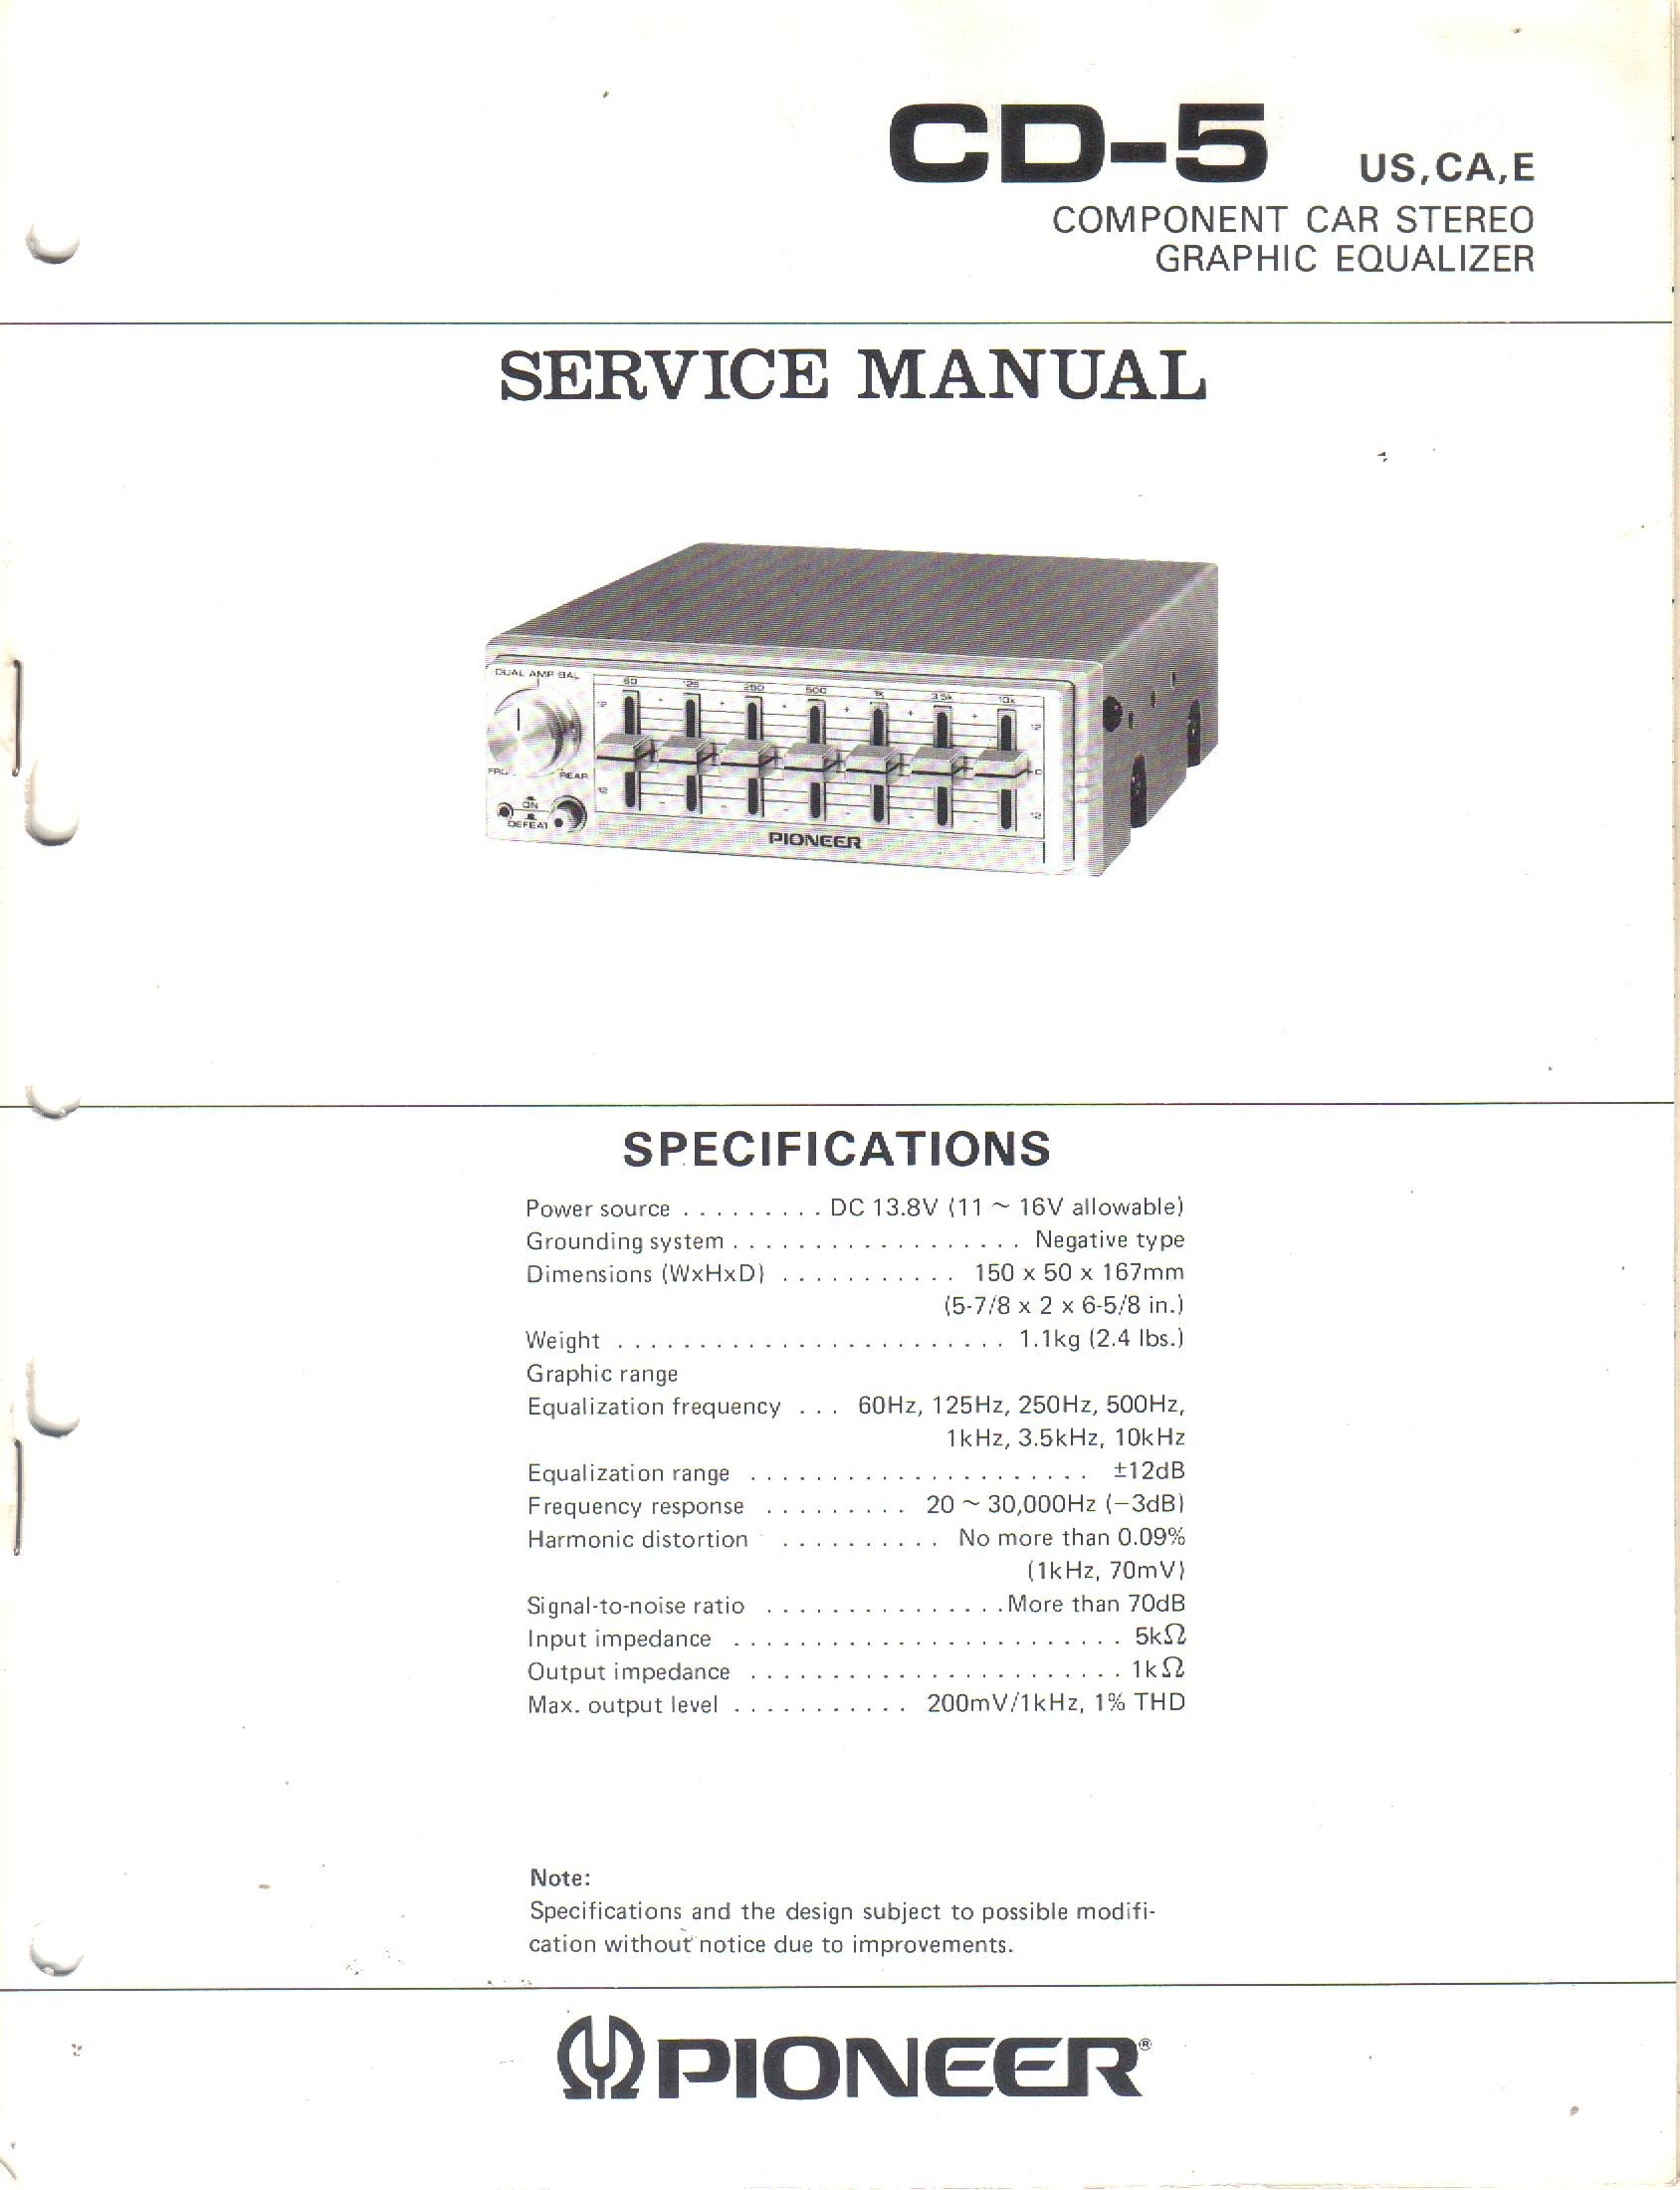 Service Manual, Parts List, Schematic Wiring Diagram for Pioneer CD-5  Component Car Stereo Graphic Equalizer: Pioneer Electronic Corp, ...